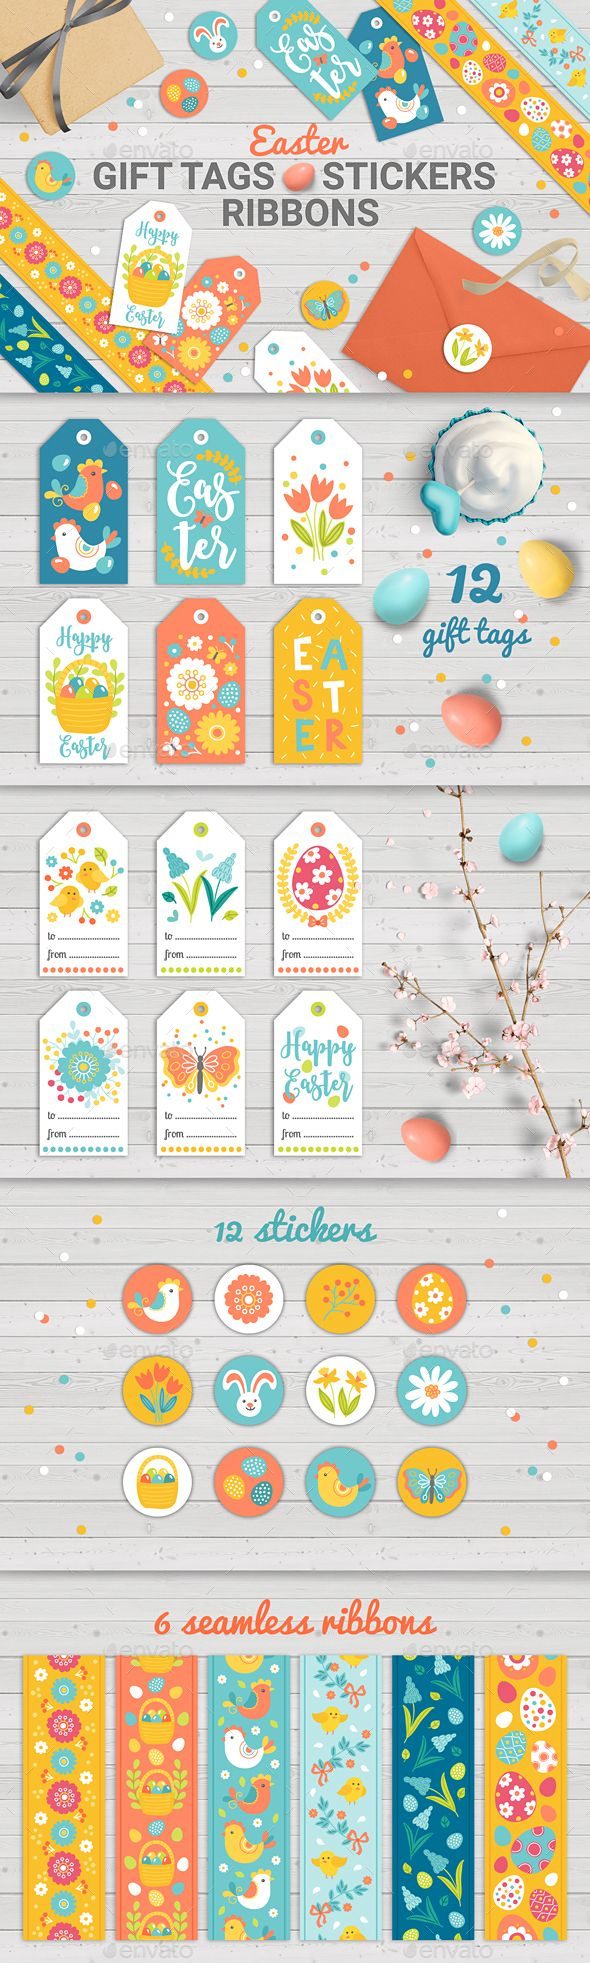 Easter gift tags with sticker and tapes miscellaneous seasons easter gift tags with sticker and tapes miscellaneous seasonsholidays negle Gallery